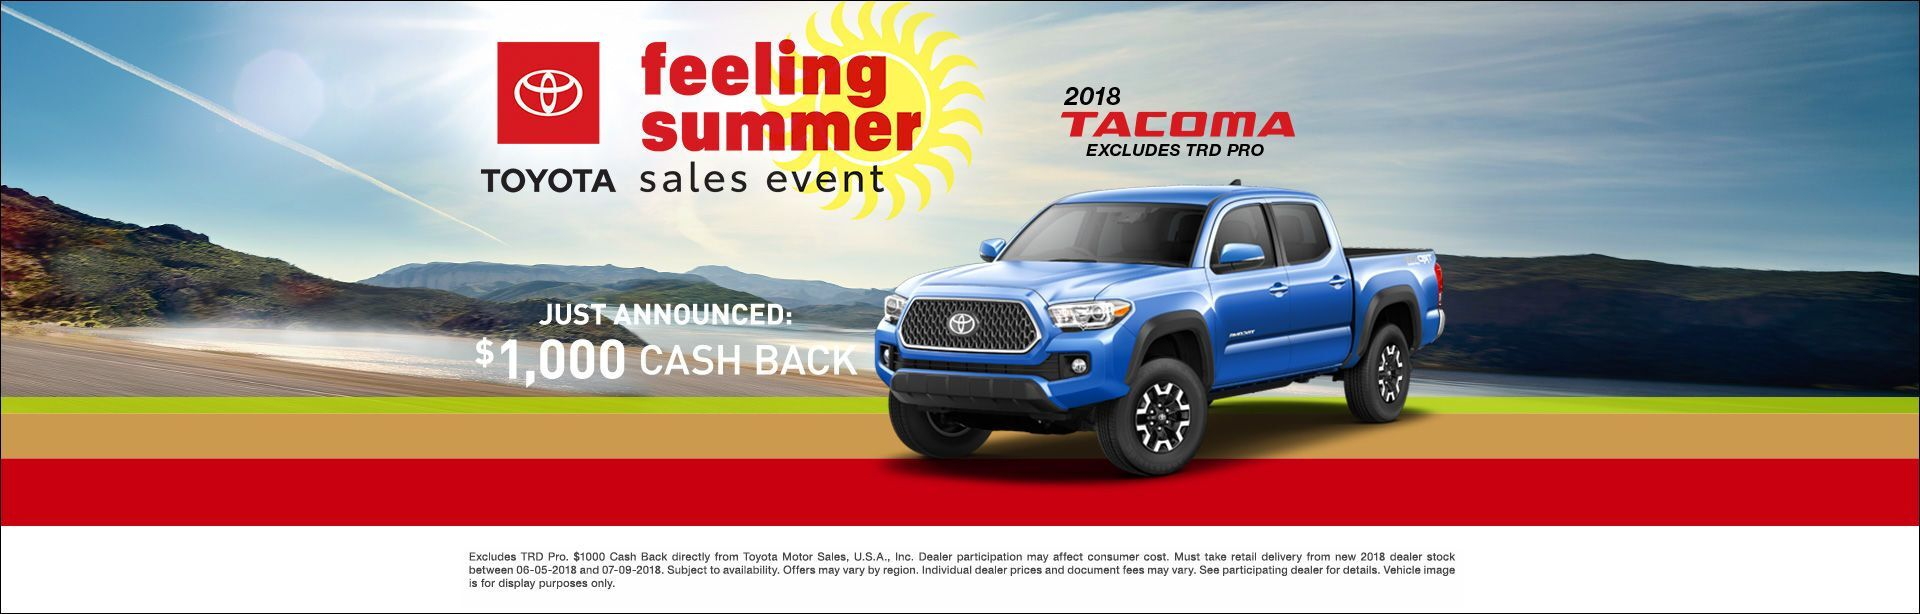 Feeling Summer Tacoma Cash Back